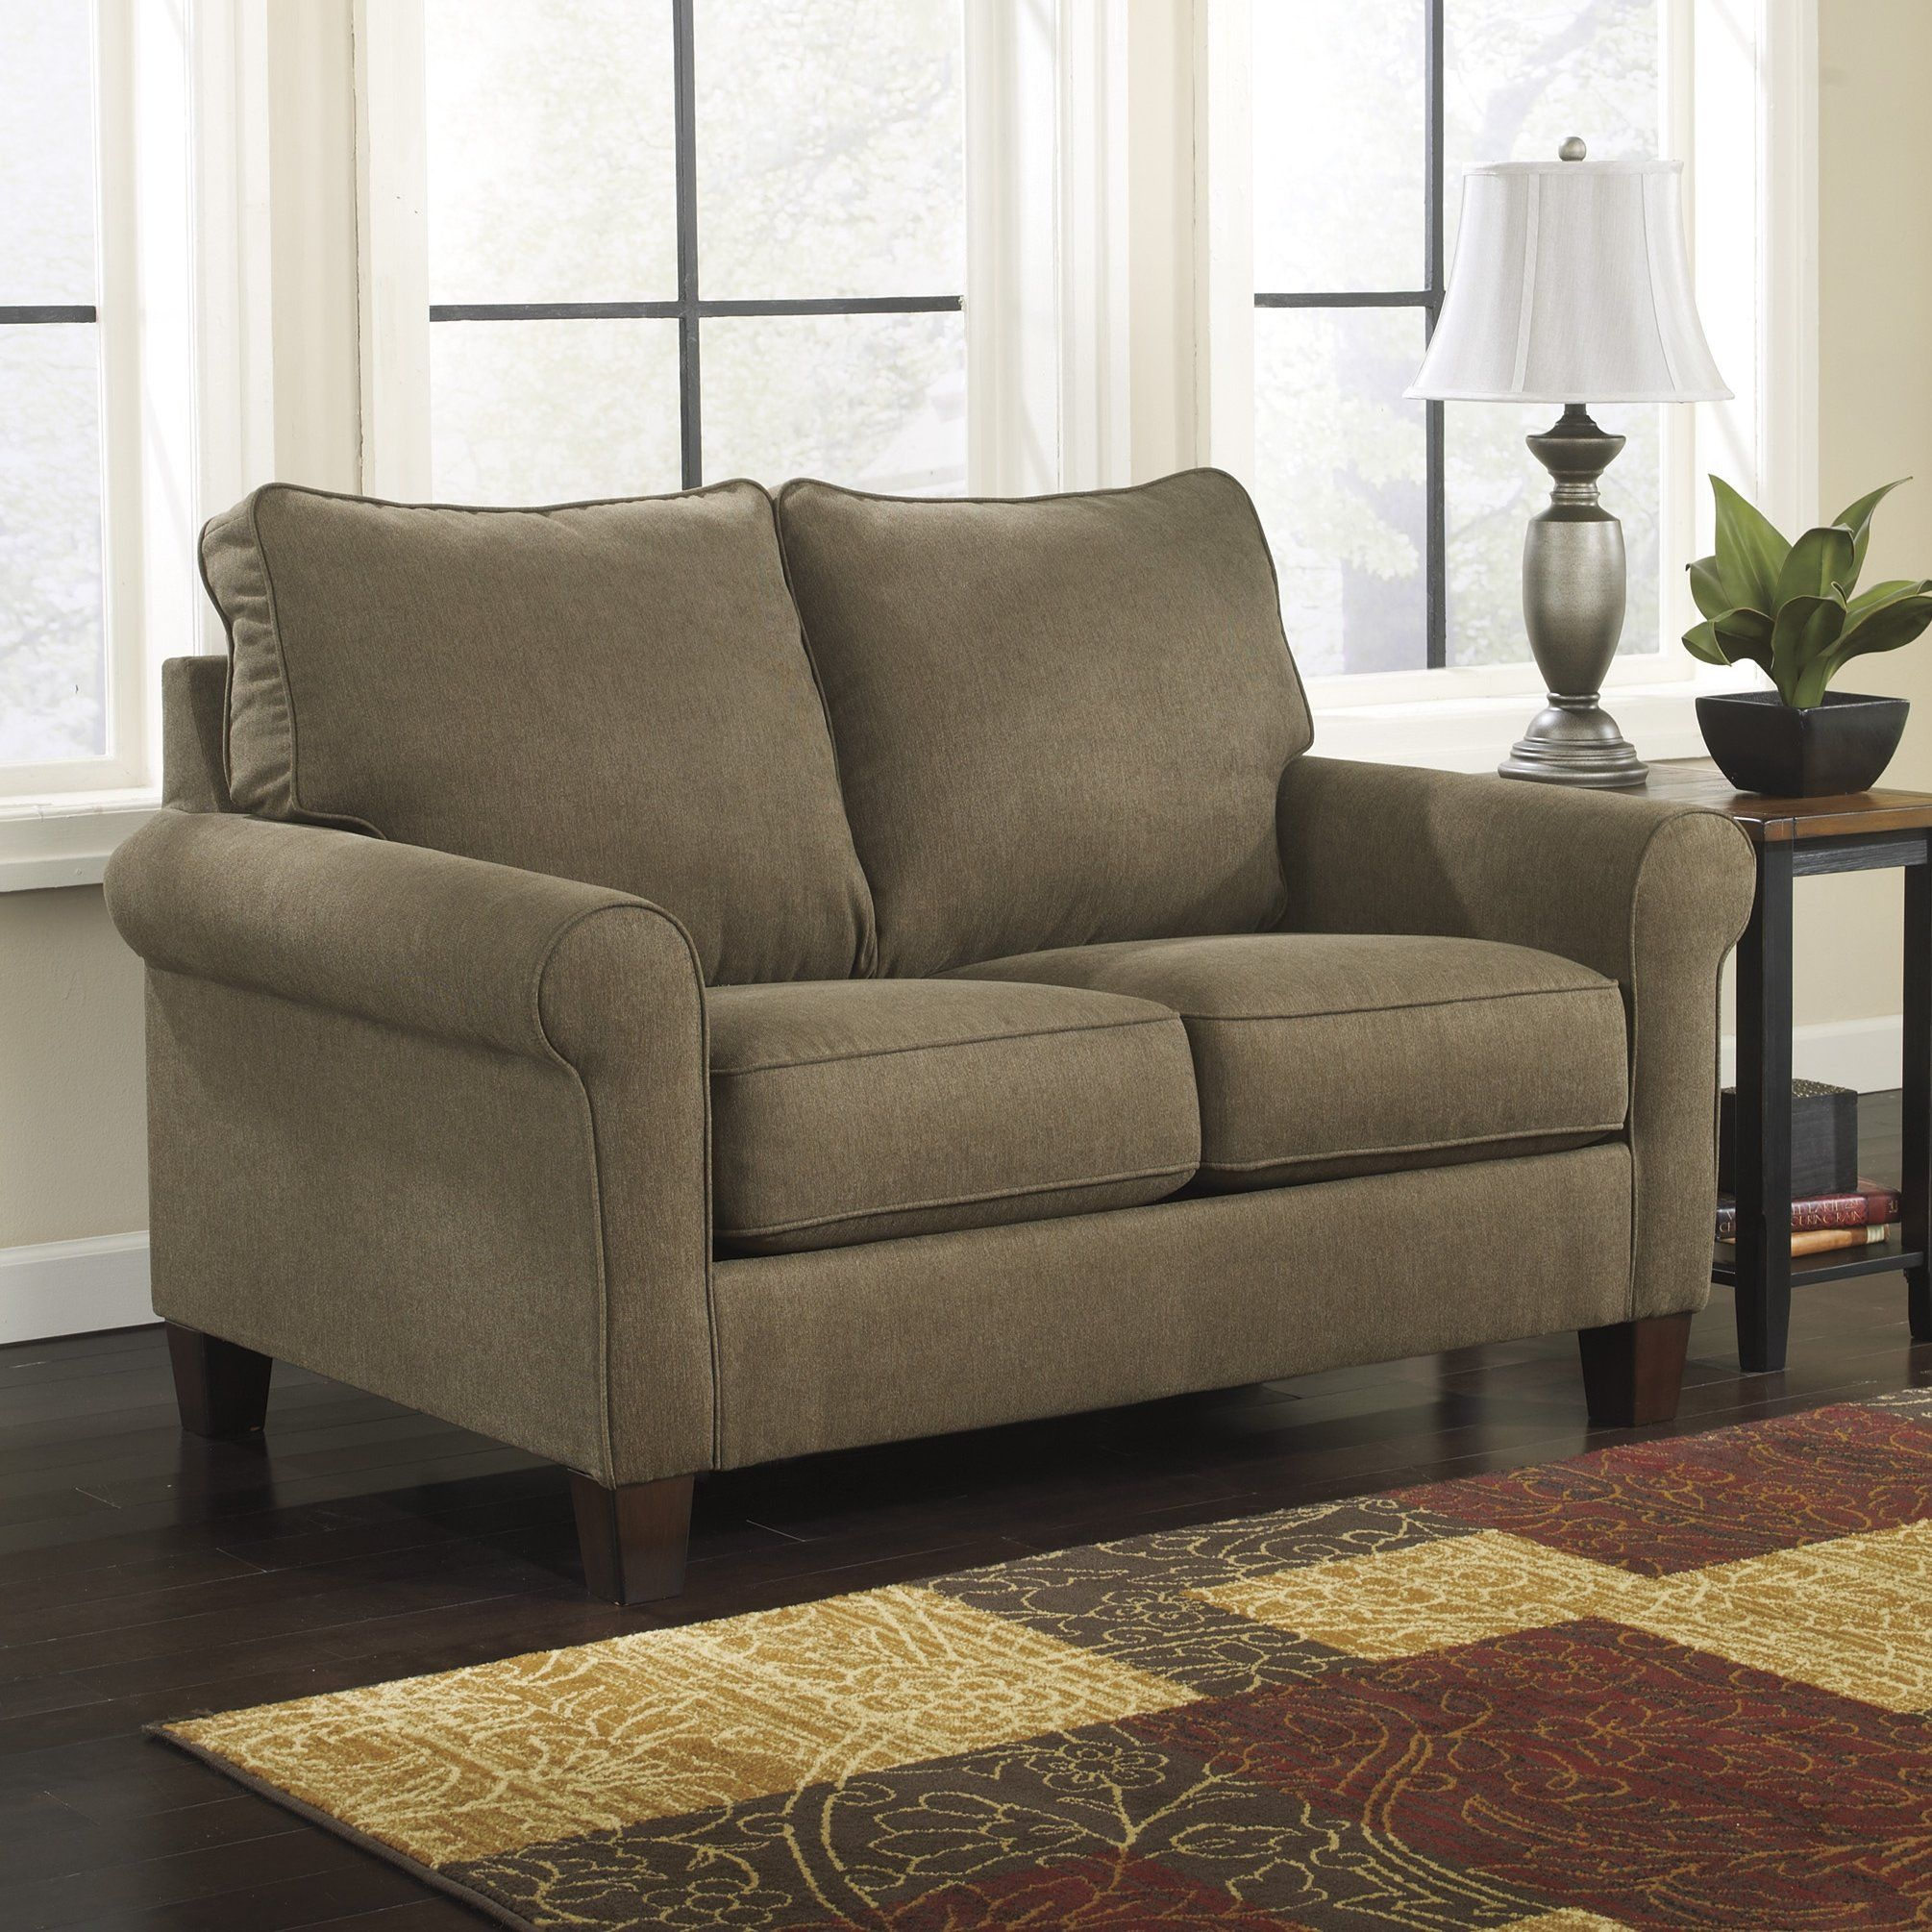 Schlafsofa Mit Liege Doppel Schlafsofa Queen Pull Out Couch